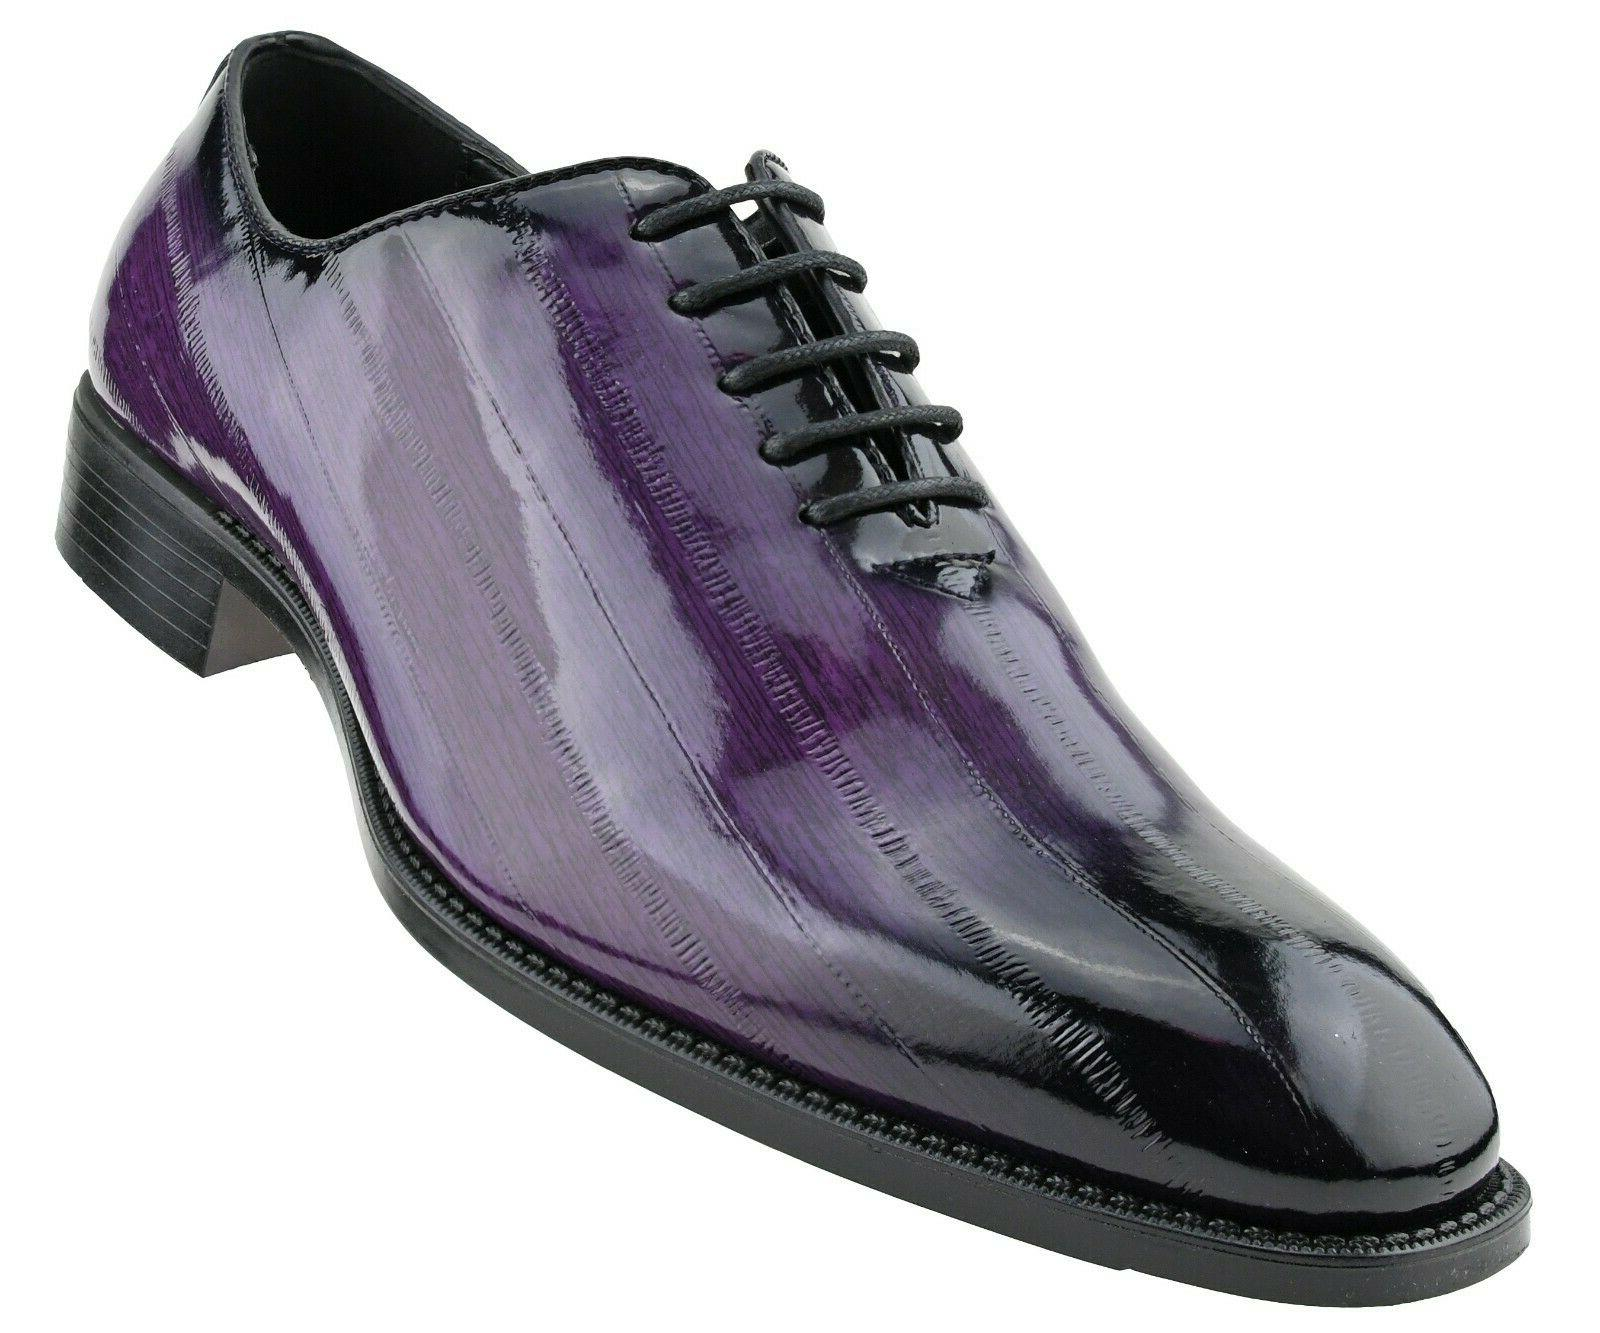 Bolano Mens Exotic Faux Eel Print Oxford Dress Shoe in Purpl